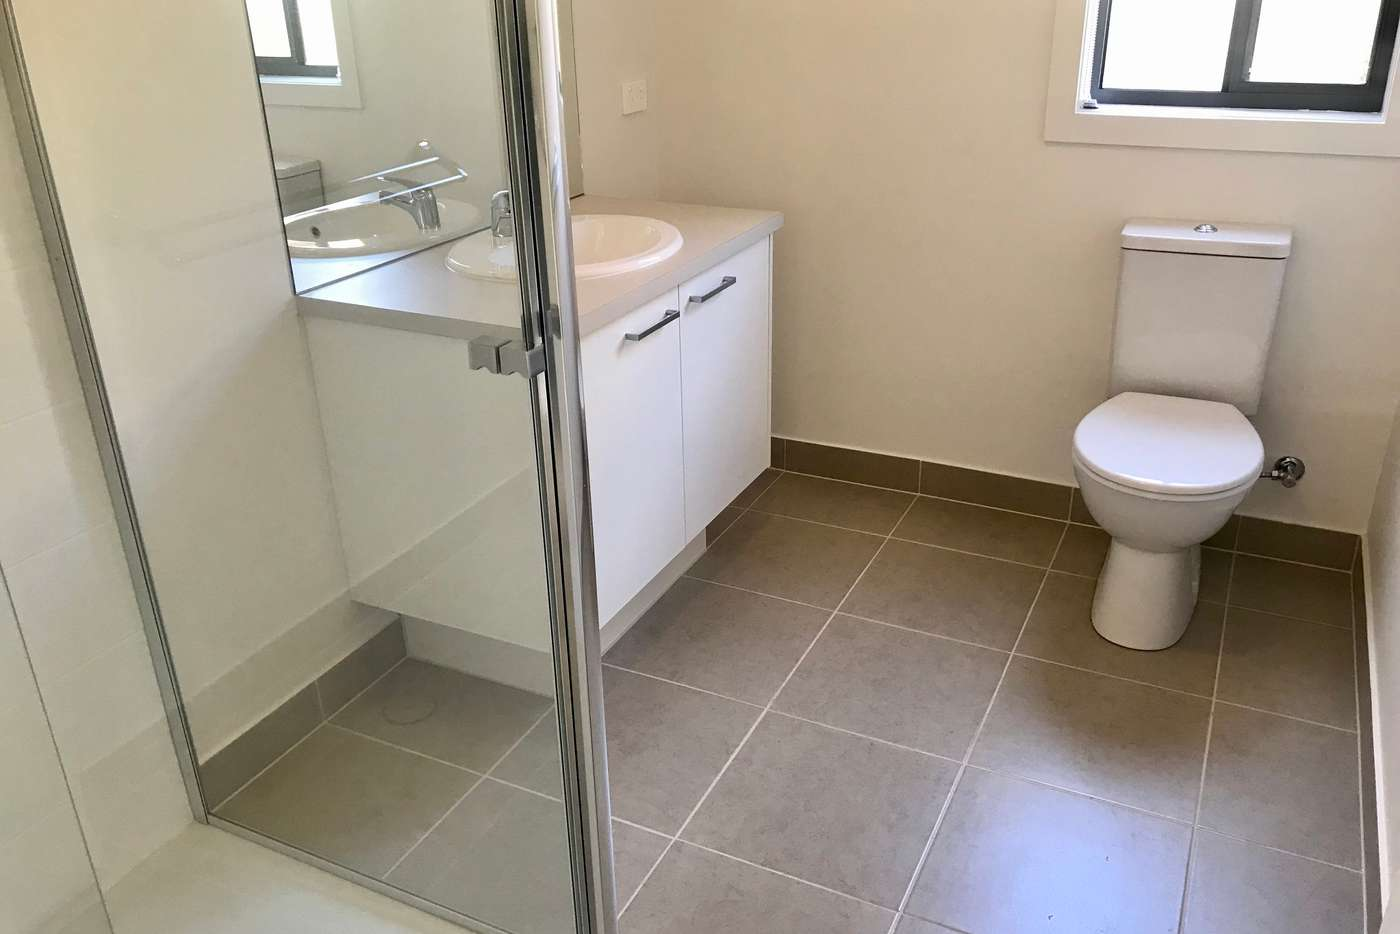 Seventh view of Homely house listing, 18 Rialto Street, Point Cook VIC 3030